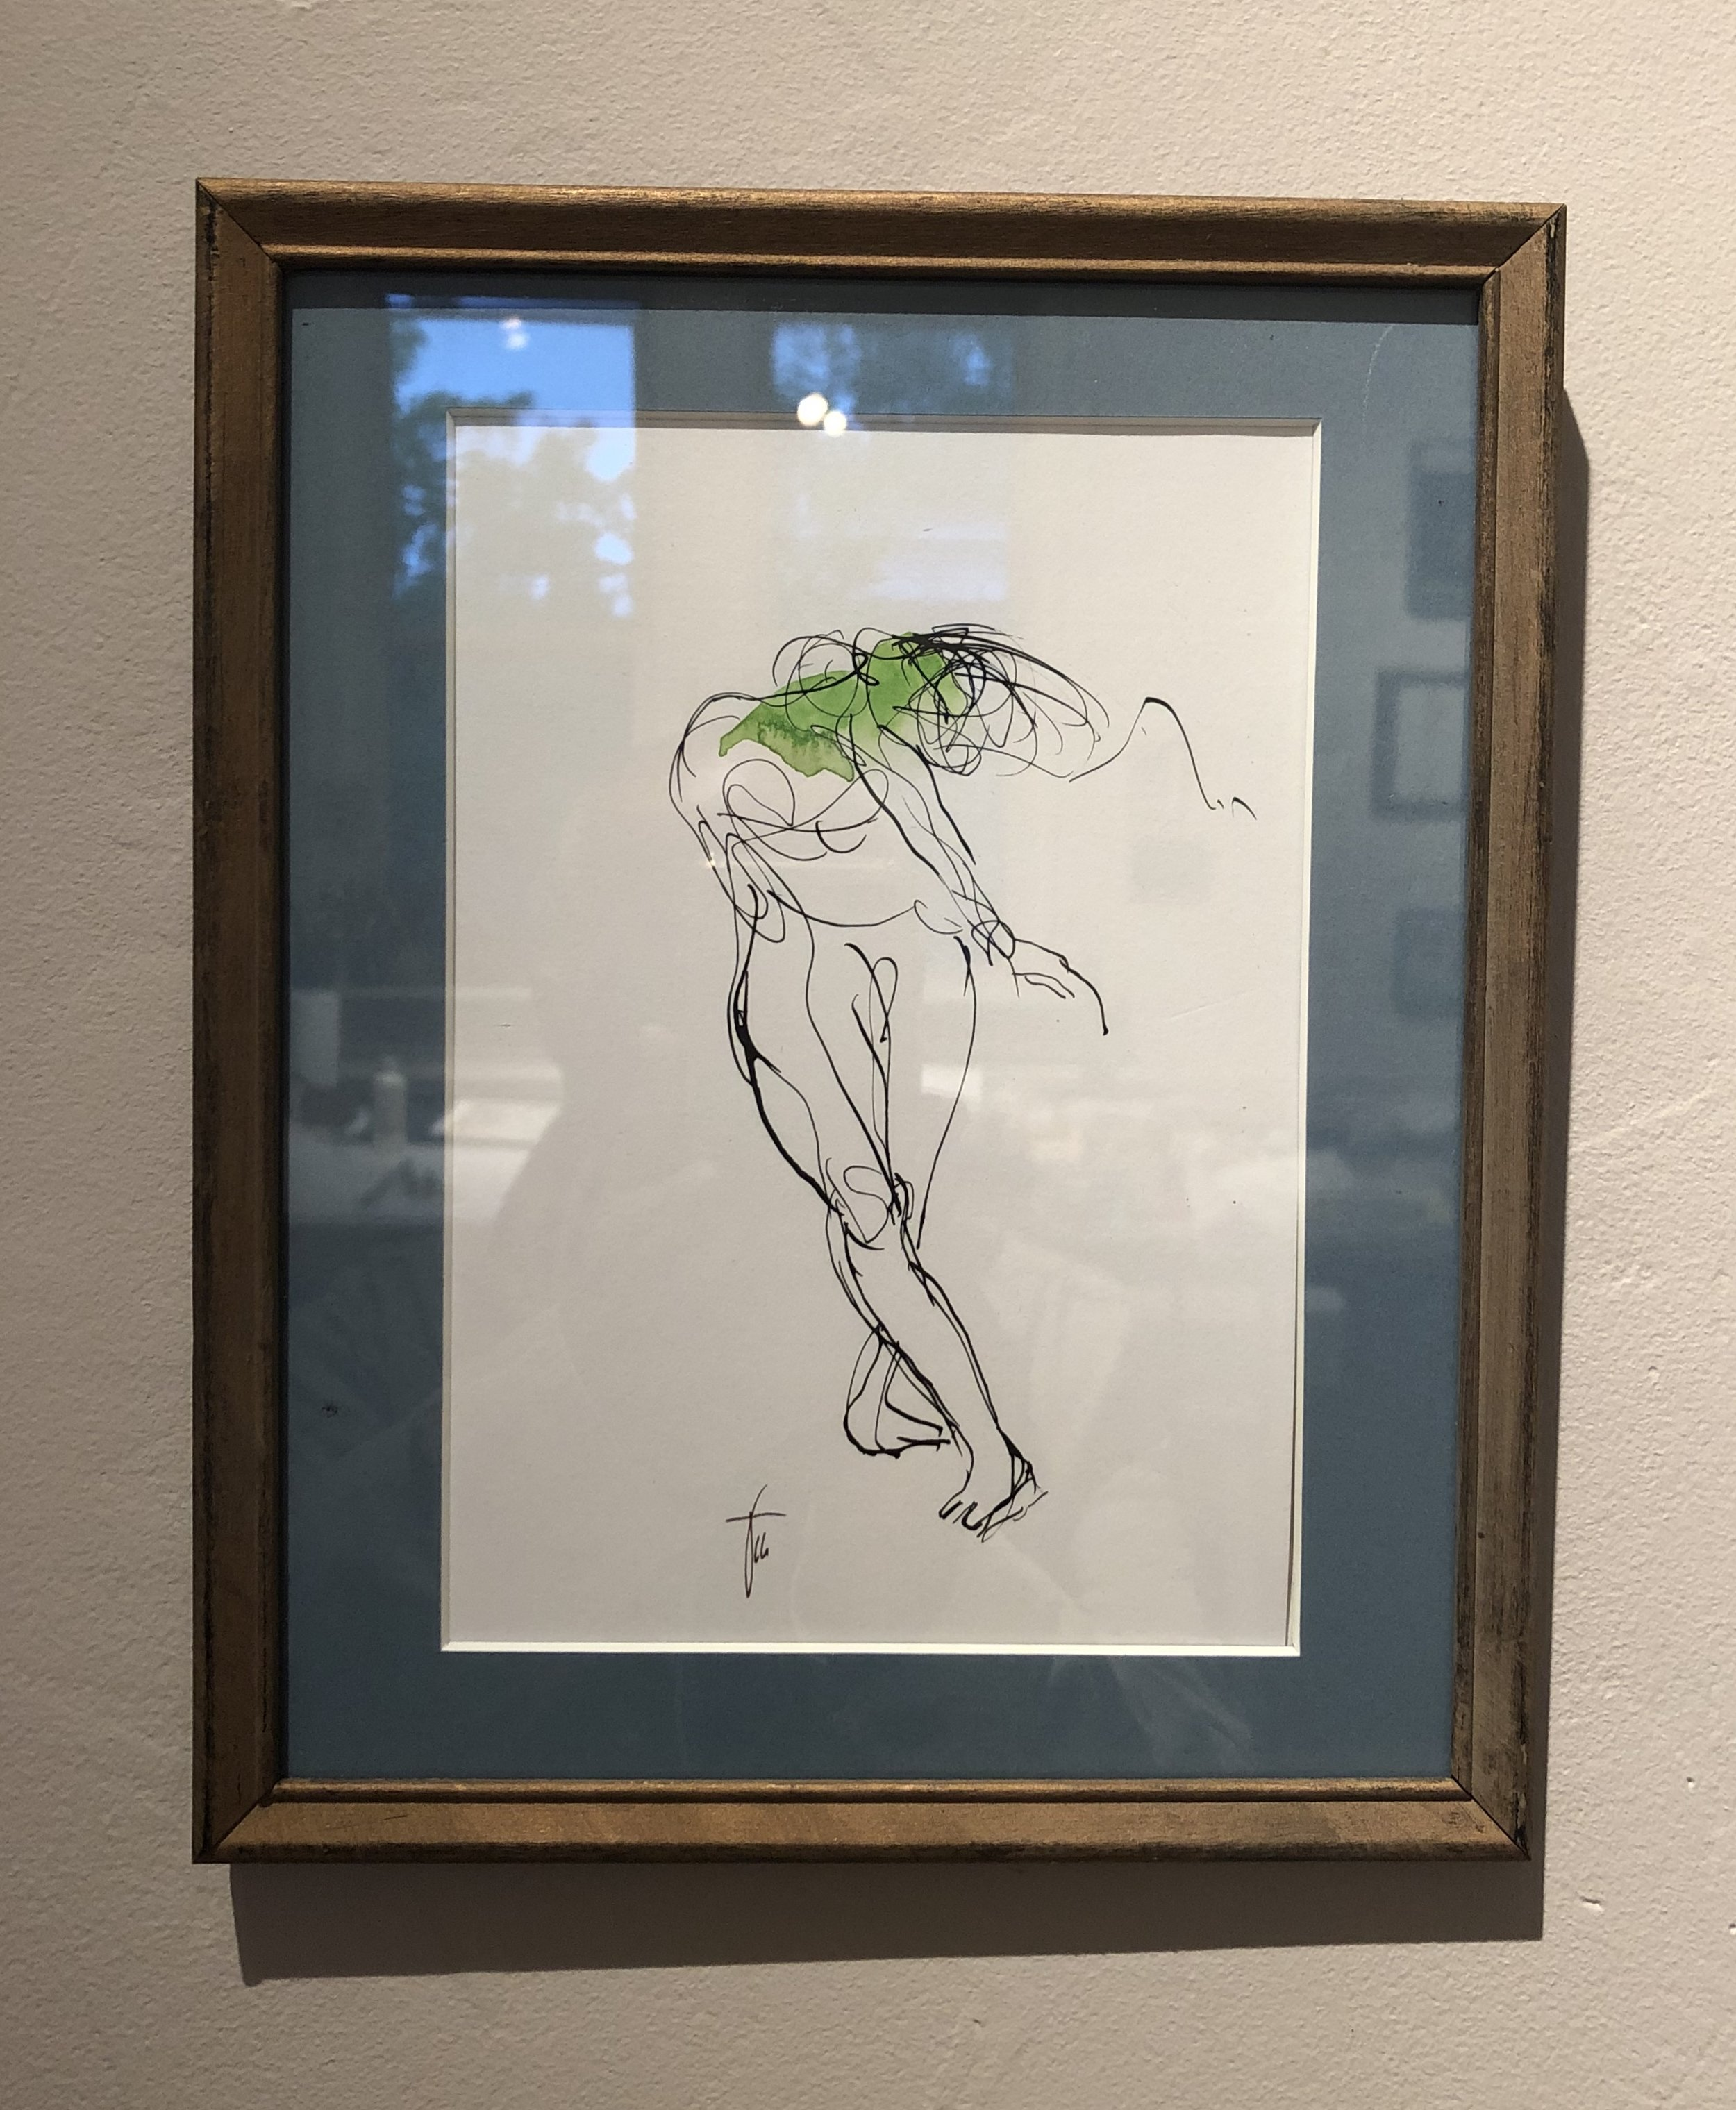 Dance, dance. Ink drawing in finished frame.